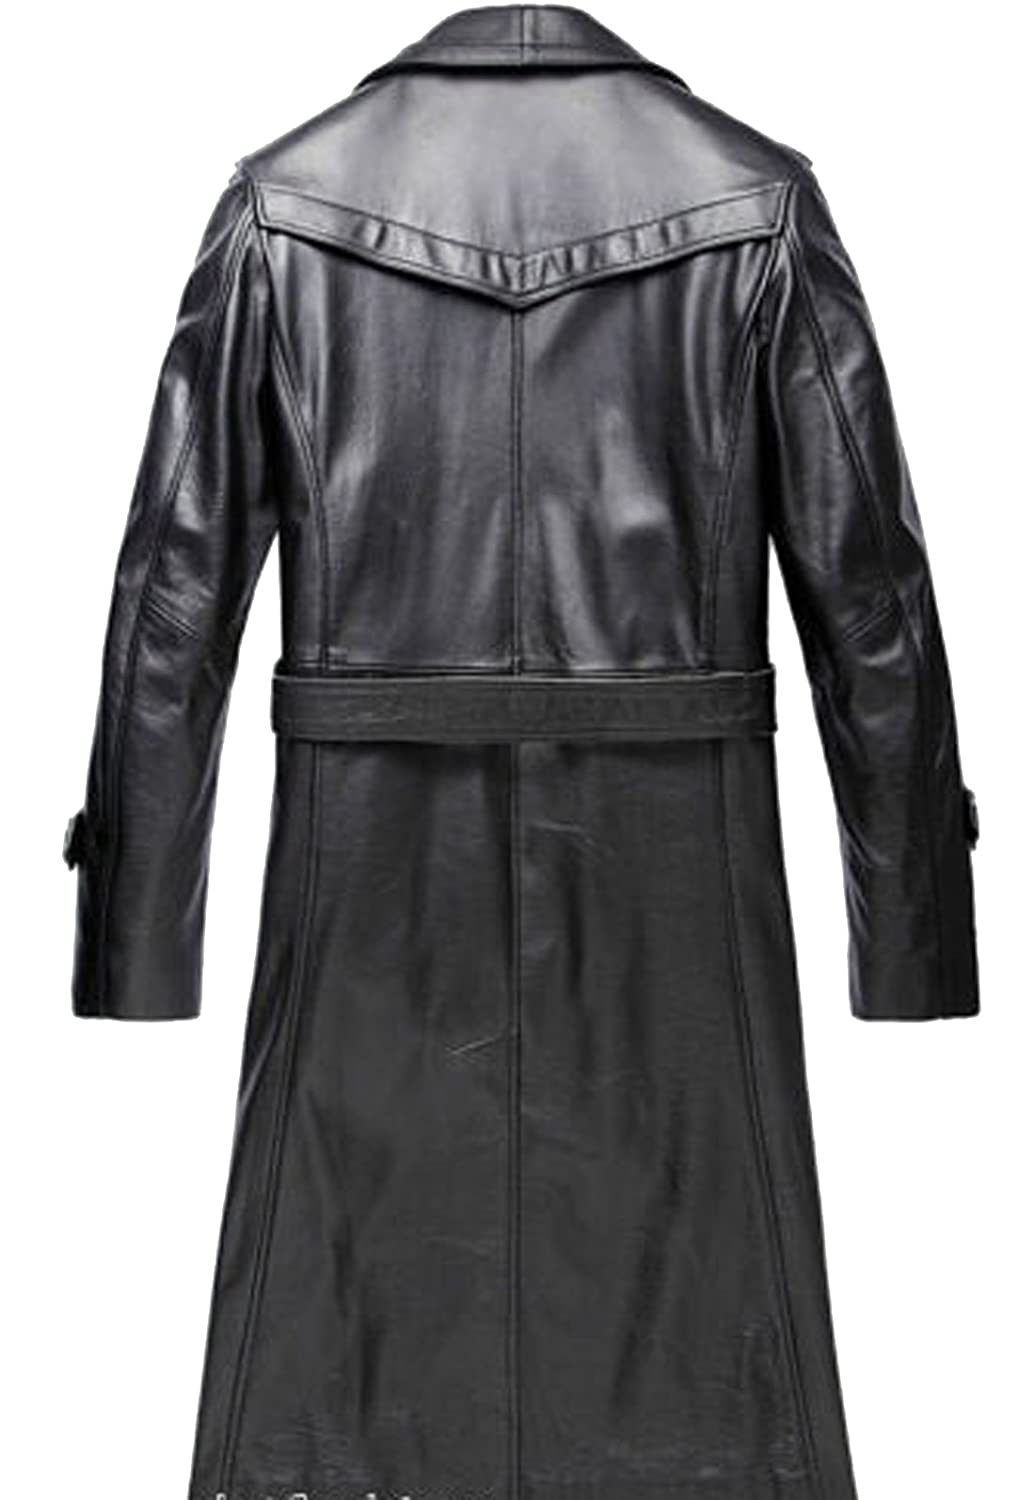 2a4e80b41 HugMe.fashion Leather Long Coat for Men and Women in Black Color ...